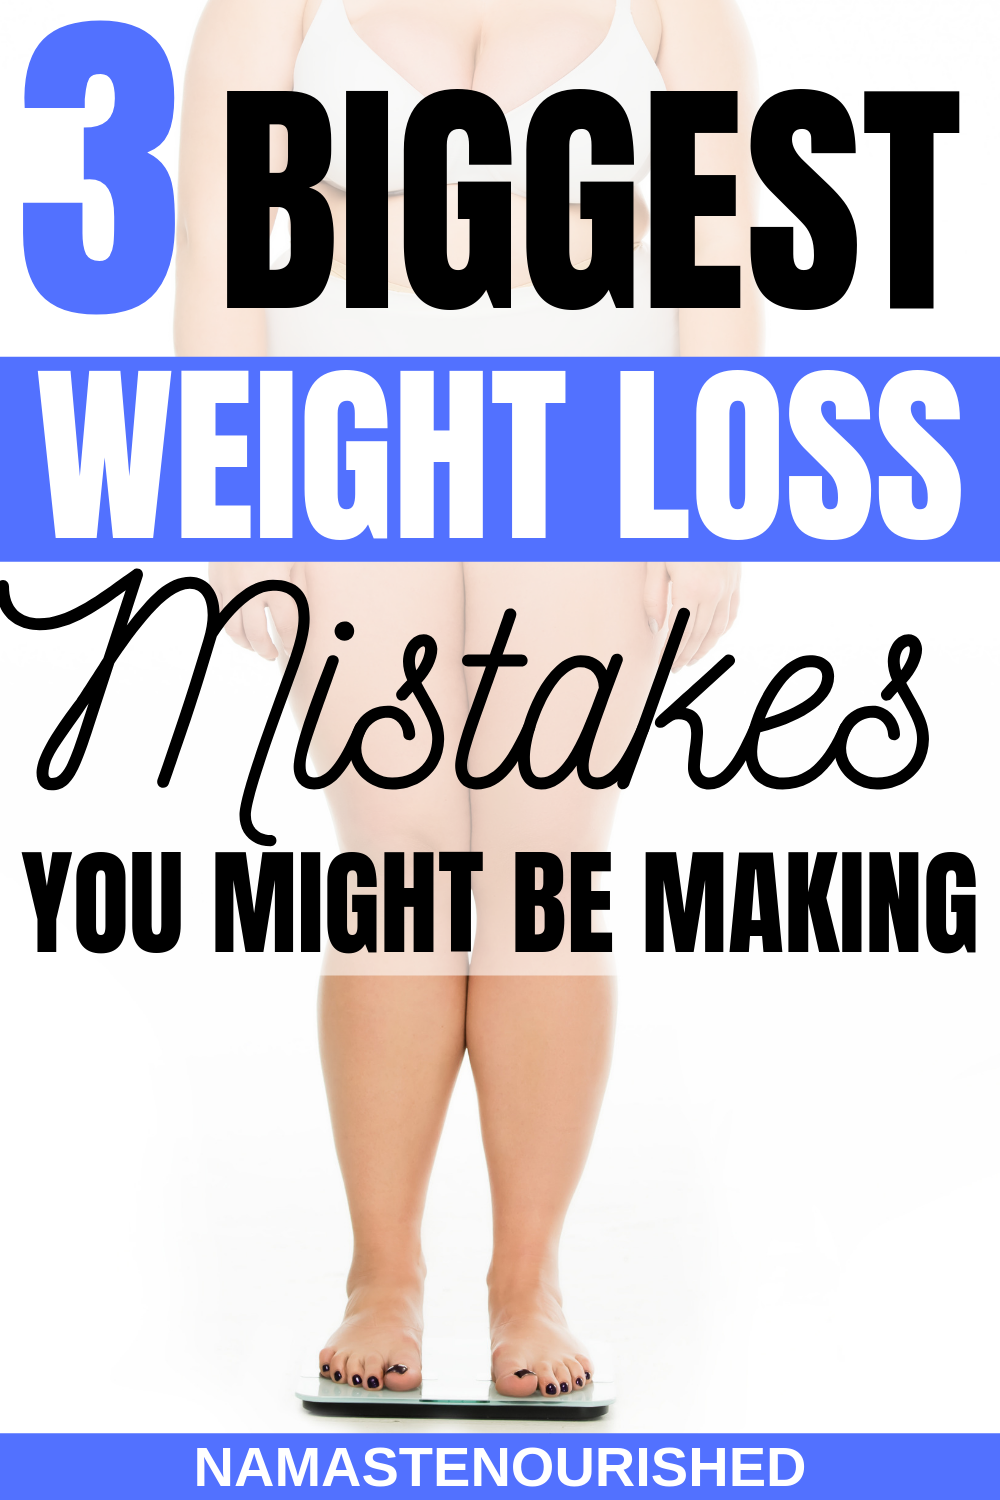 Weight loss tips for women are a dime a dozen - everyone has a…